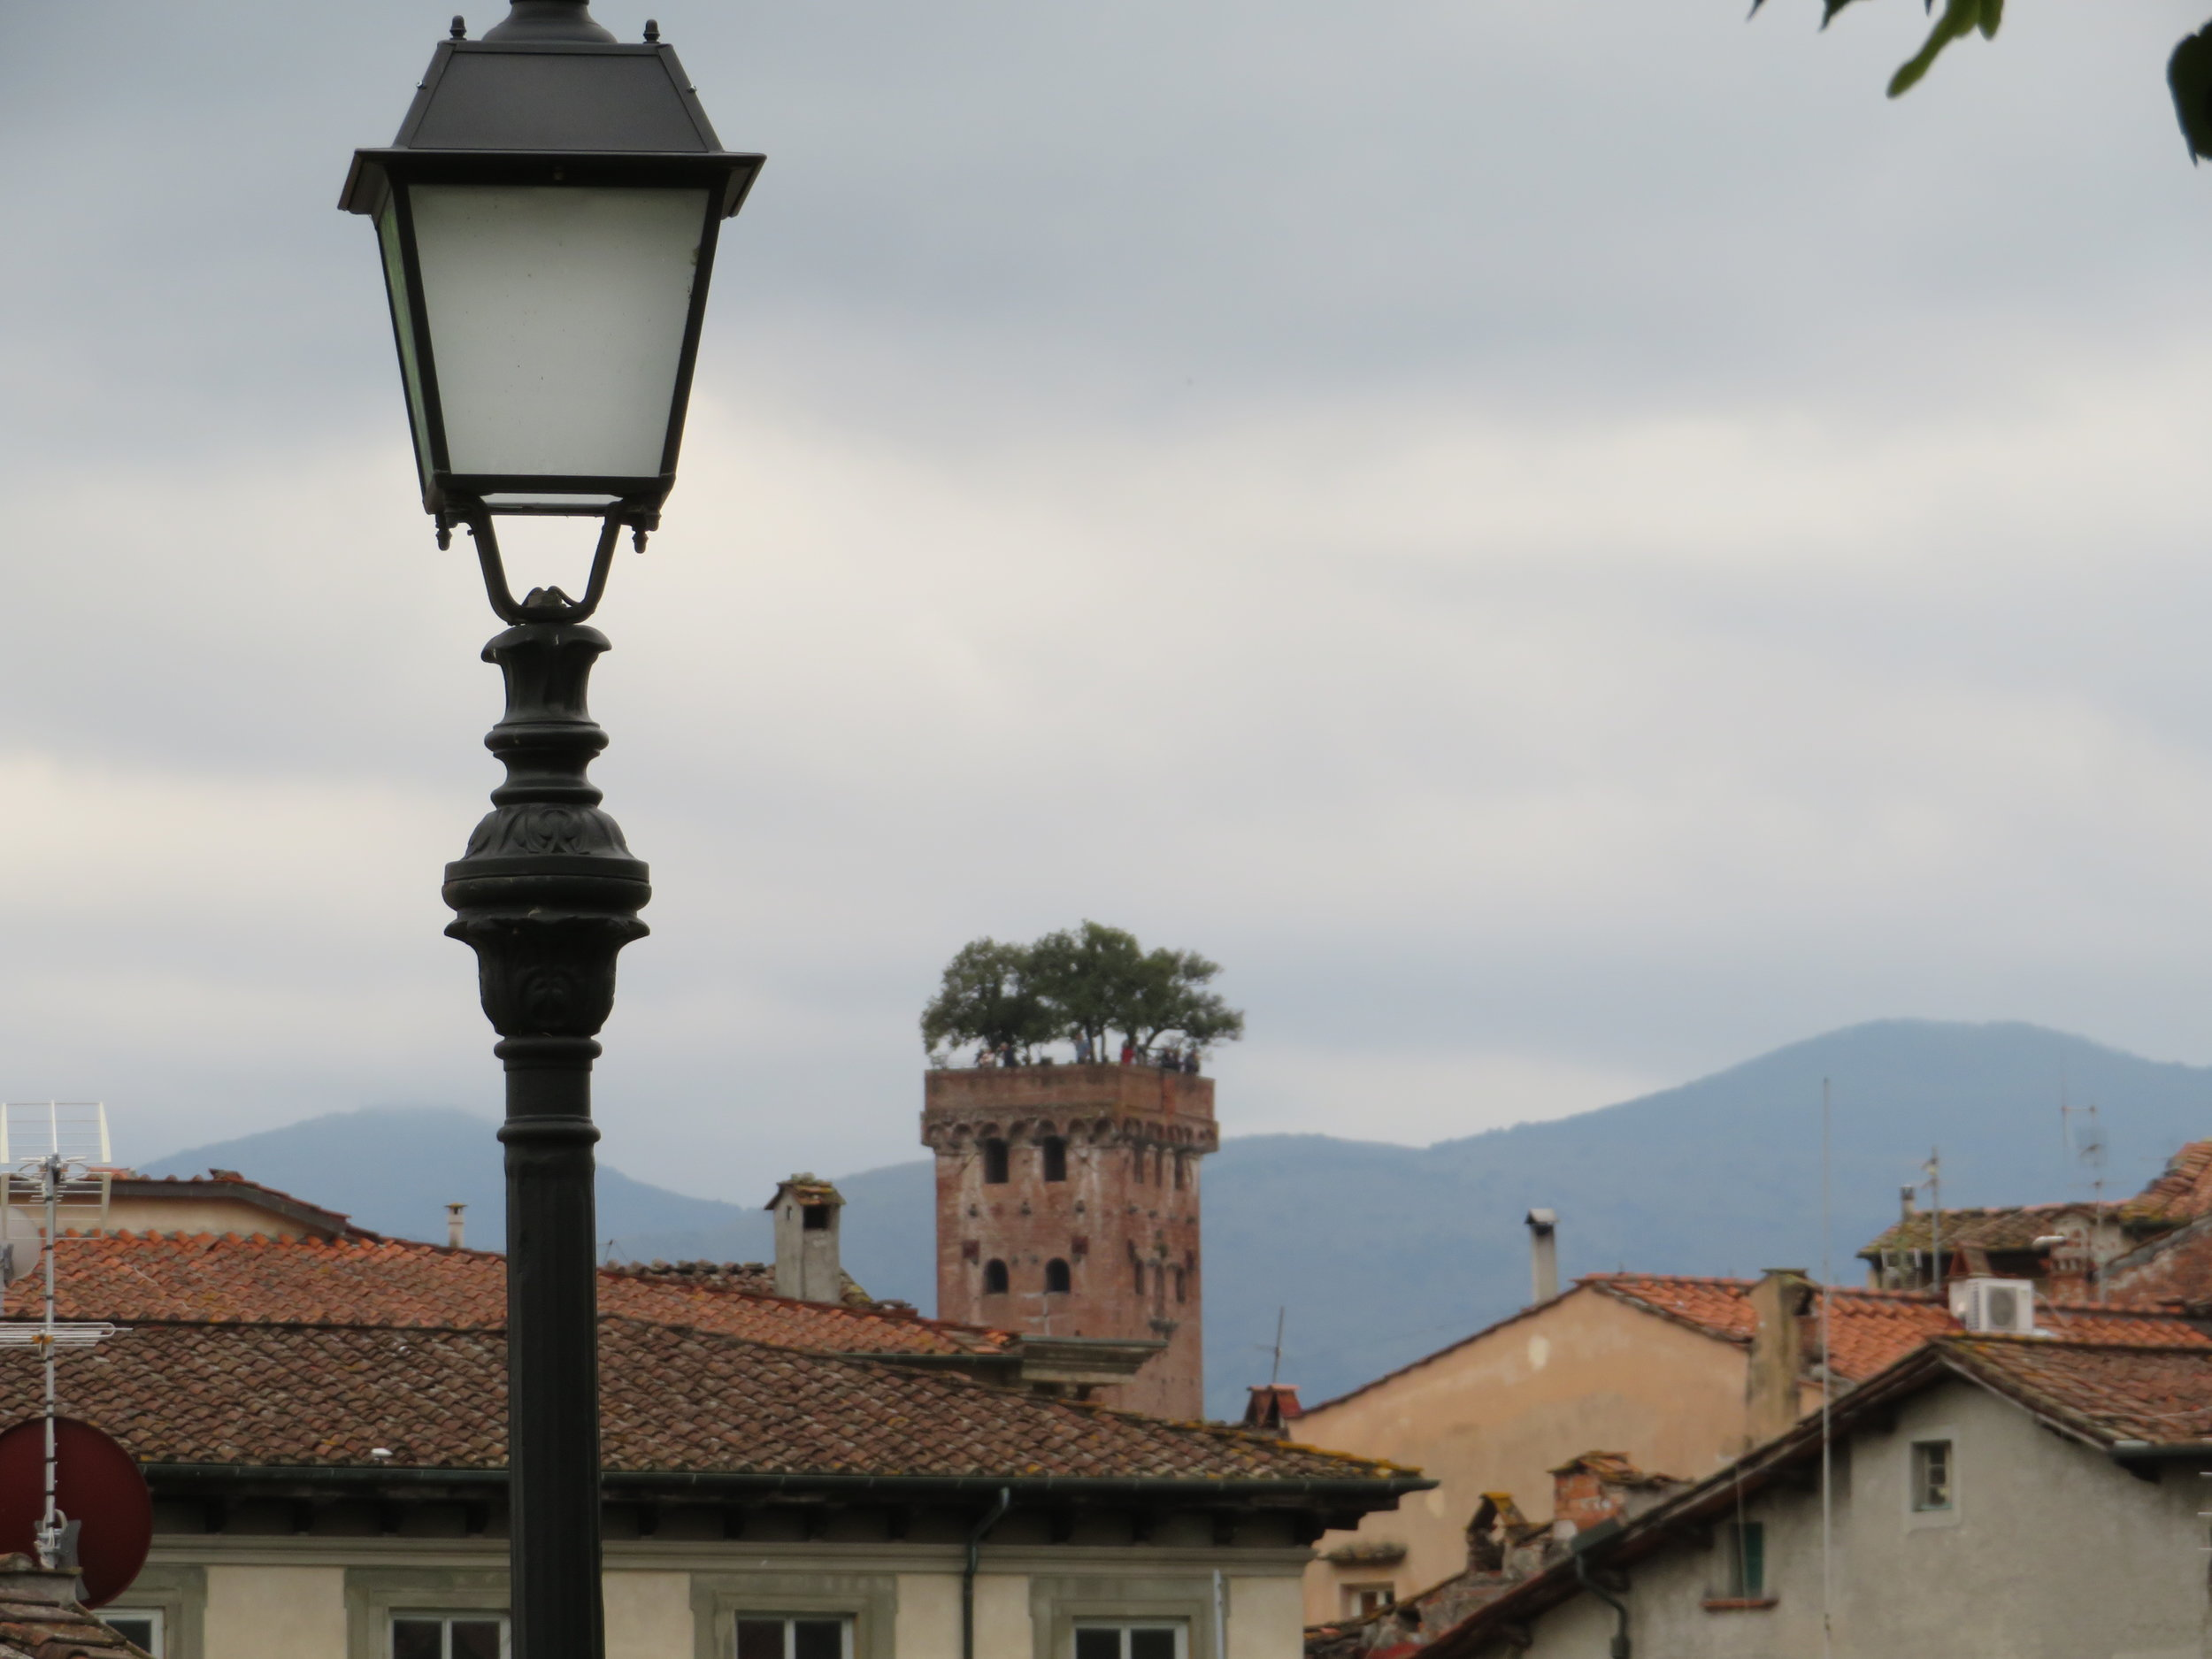 Taken from the wall, the  Guinigi Tower  with its famed rooftop garden dominates the center of the photo with mountains in the background.